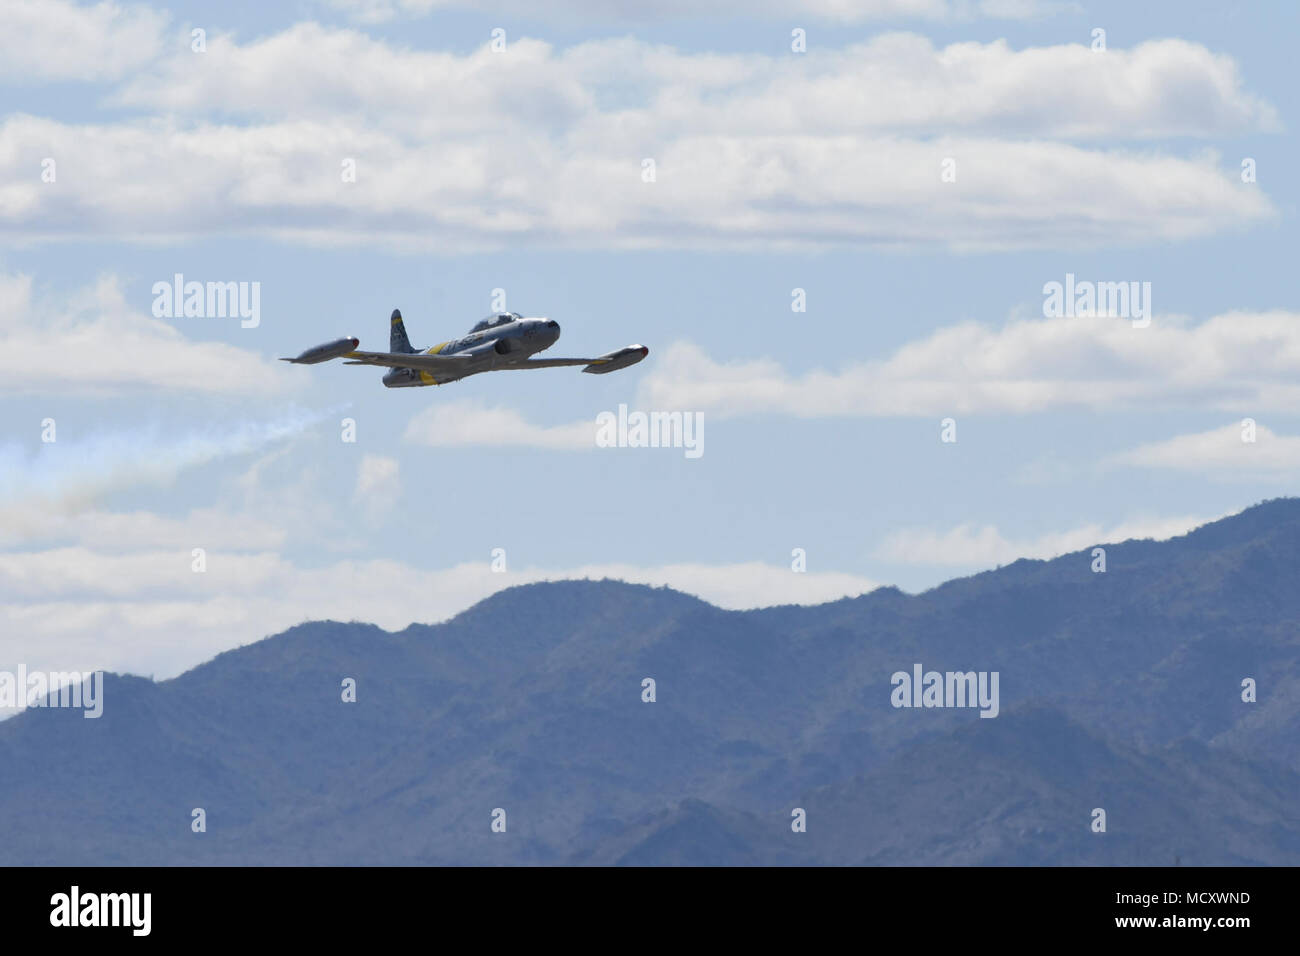 """Greg Coyler maneuvers his T-33 aircraft, """"The Ace Maker"""" during an ..."""